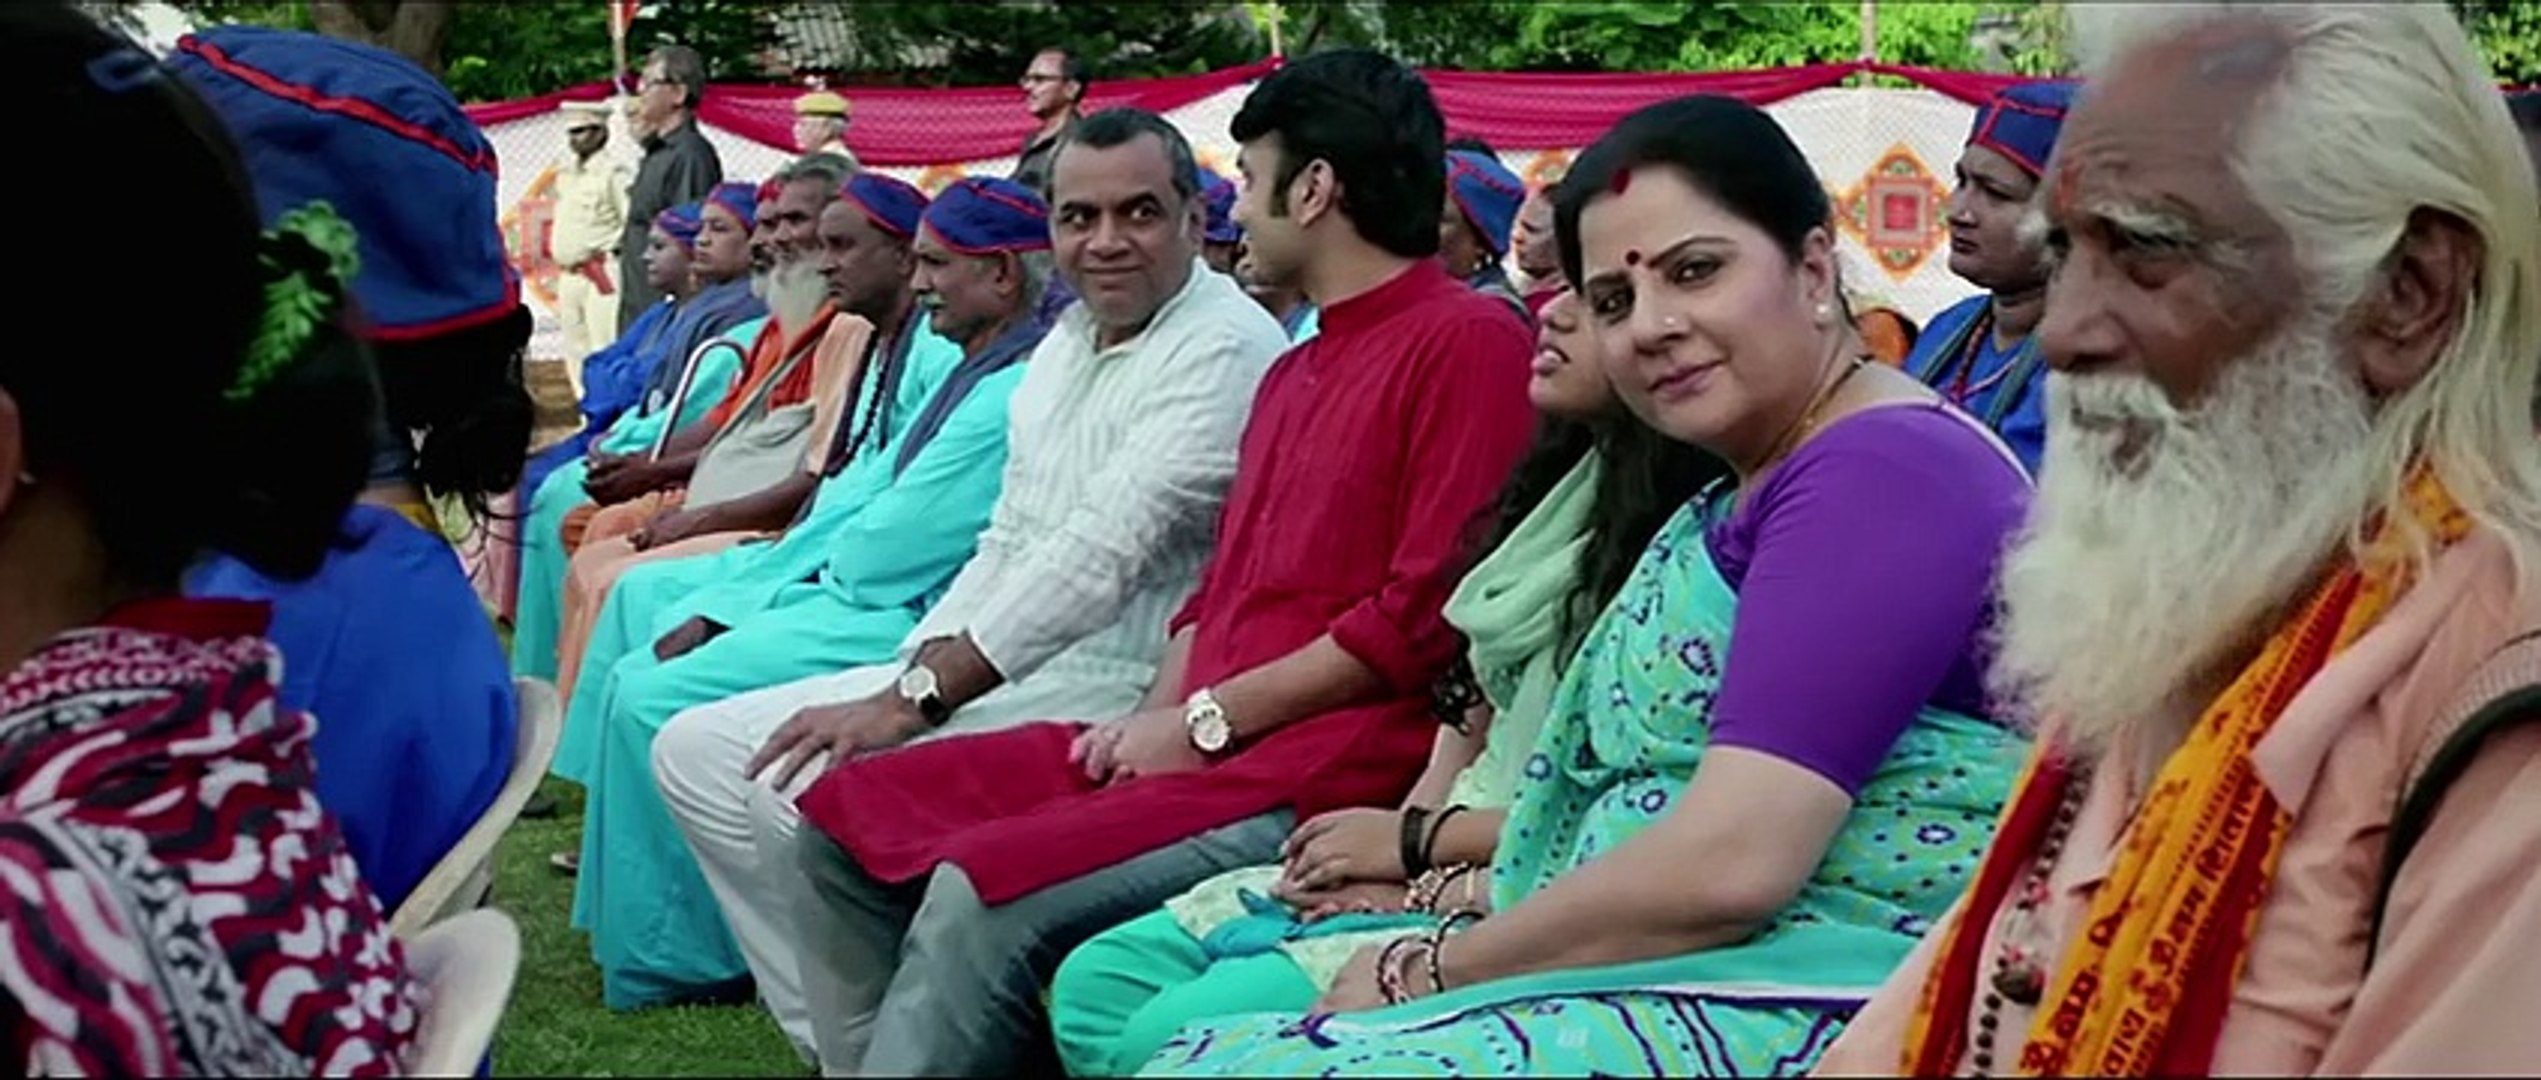 New Bollywood Movie 2015 | Dharam Sankat Mein - Official Trailer - In Cinemas 10th April 2015